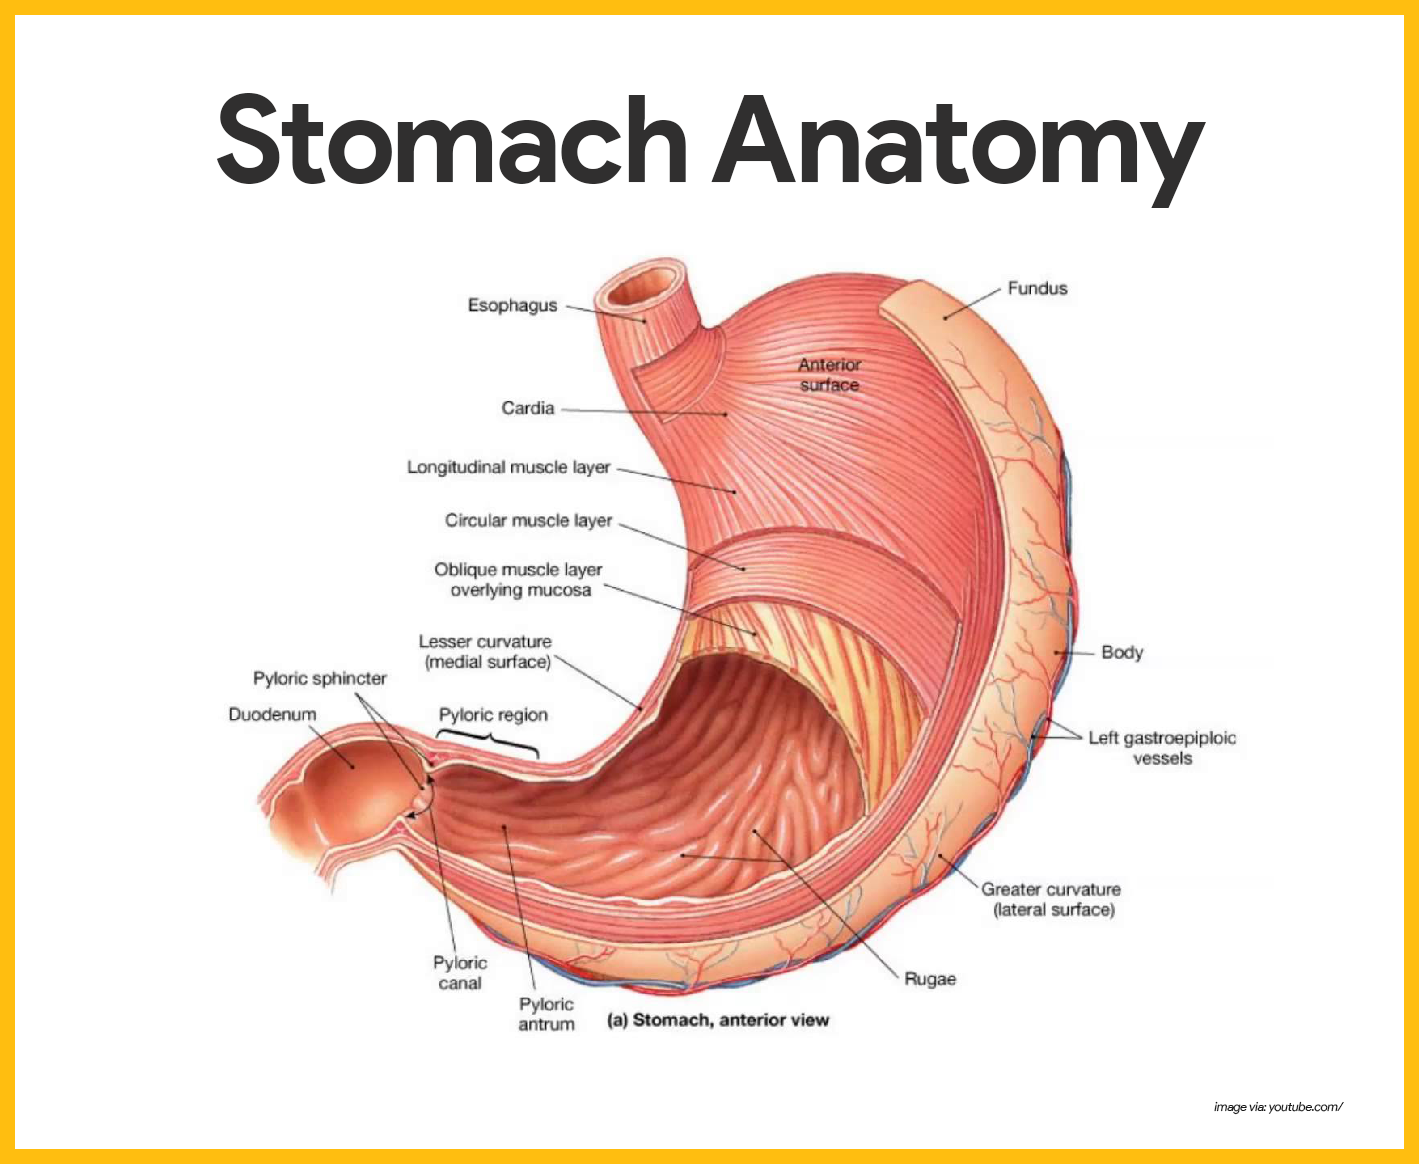 Digestive System Anatomy and Physiology | Nursing School and Study ...